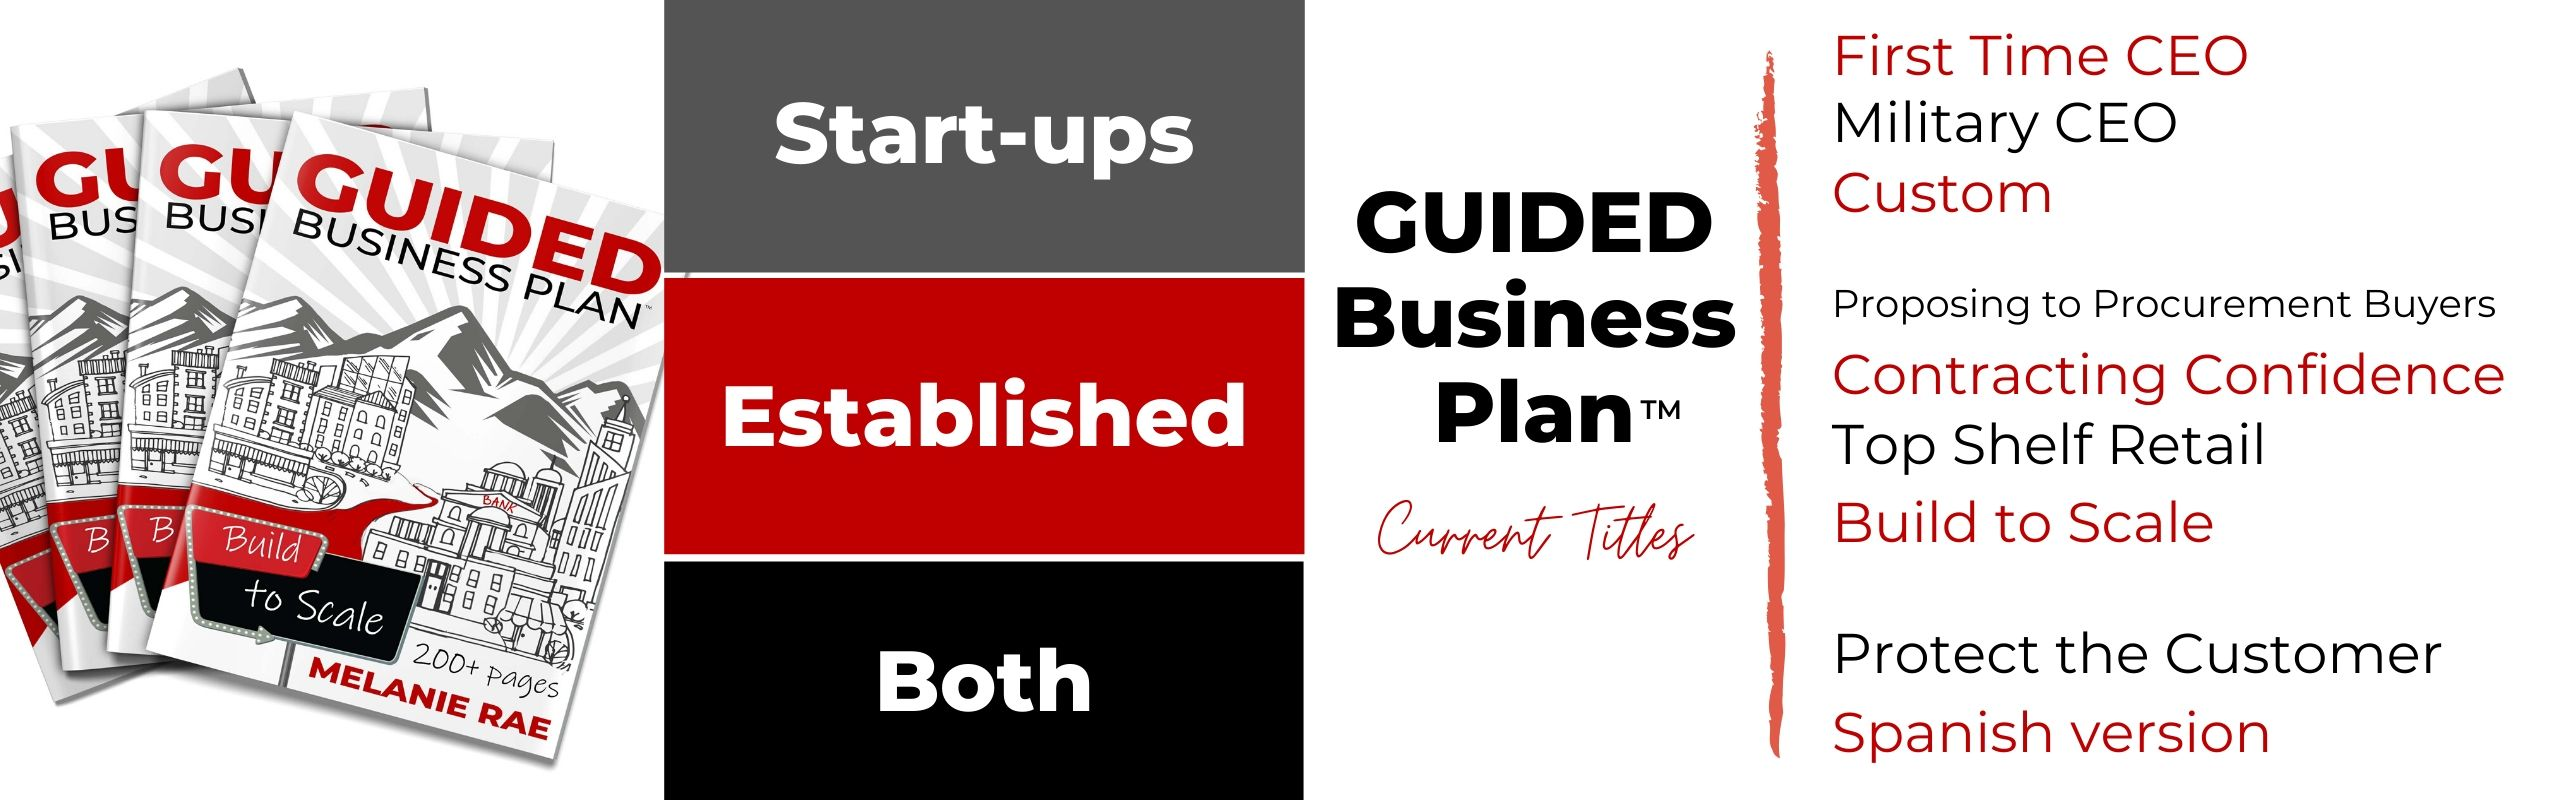 GUIDED Business Plan book titles